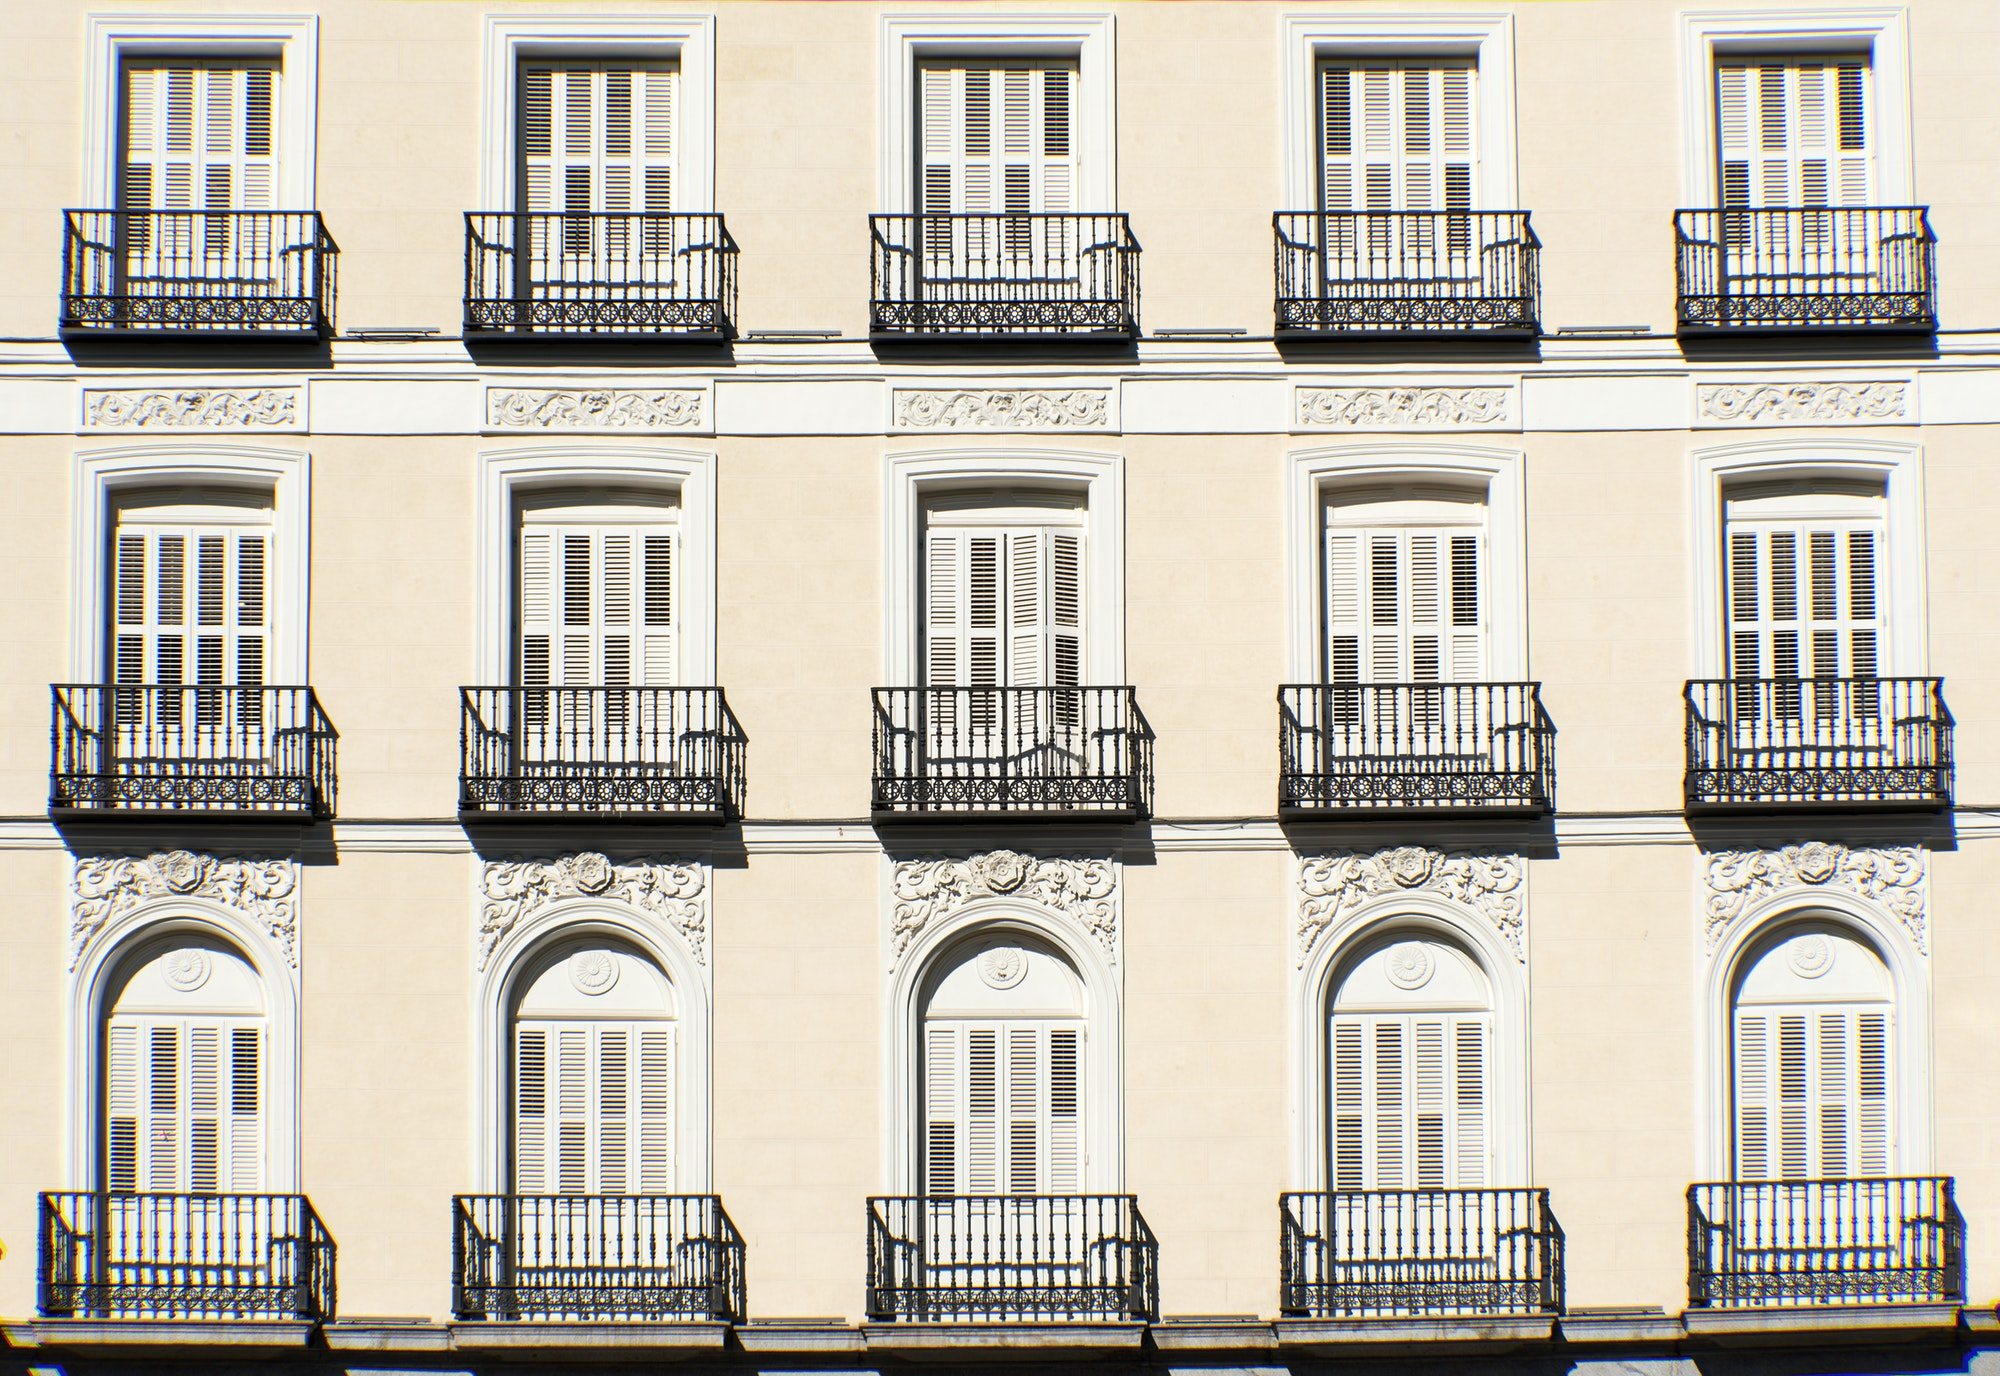 Facade with balconies in Madrid